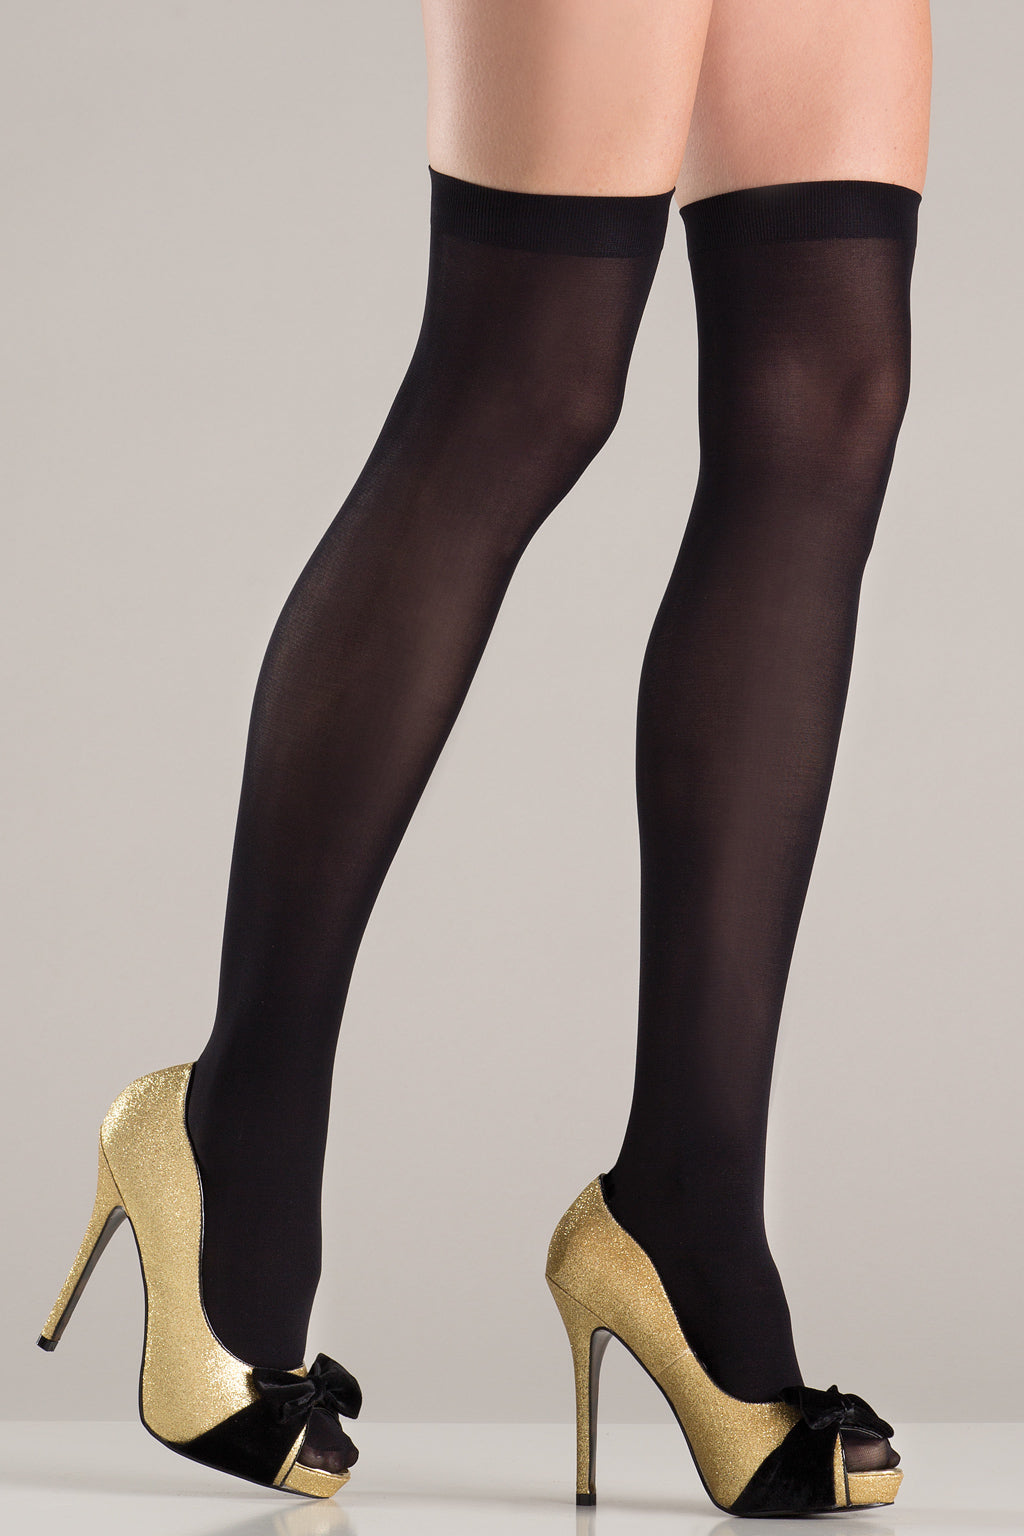 LALA TRENDS Be Wicked Opaque Thigh Highs Black Hosiery $9.95